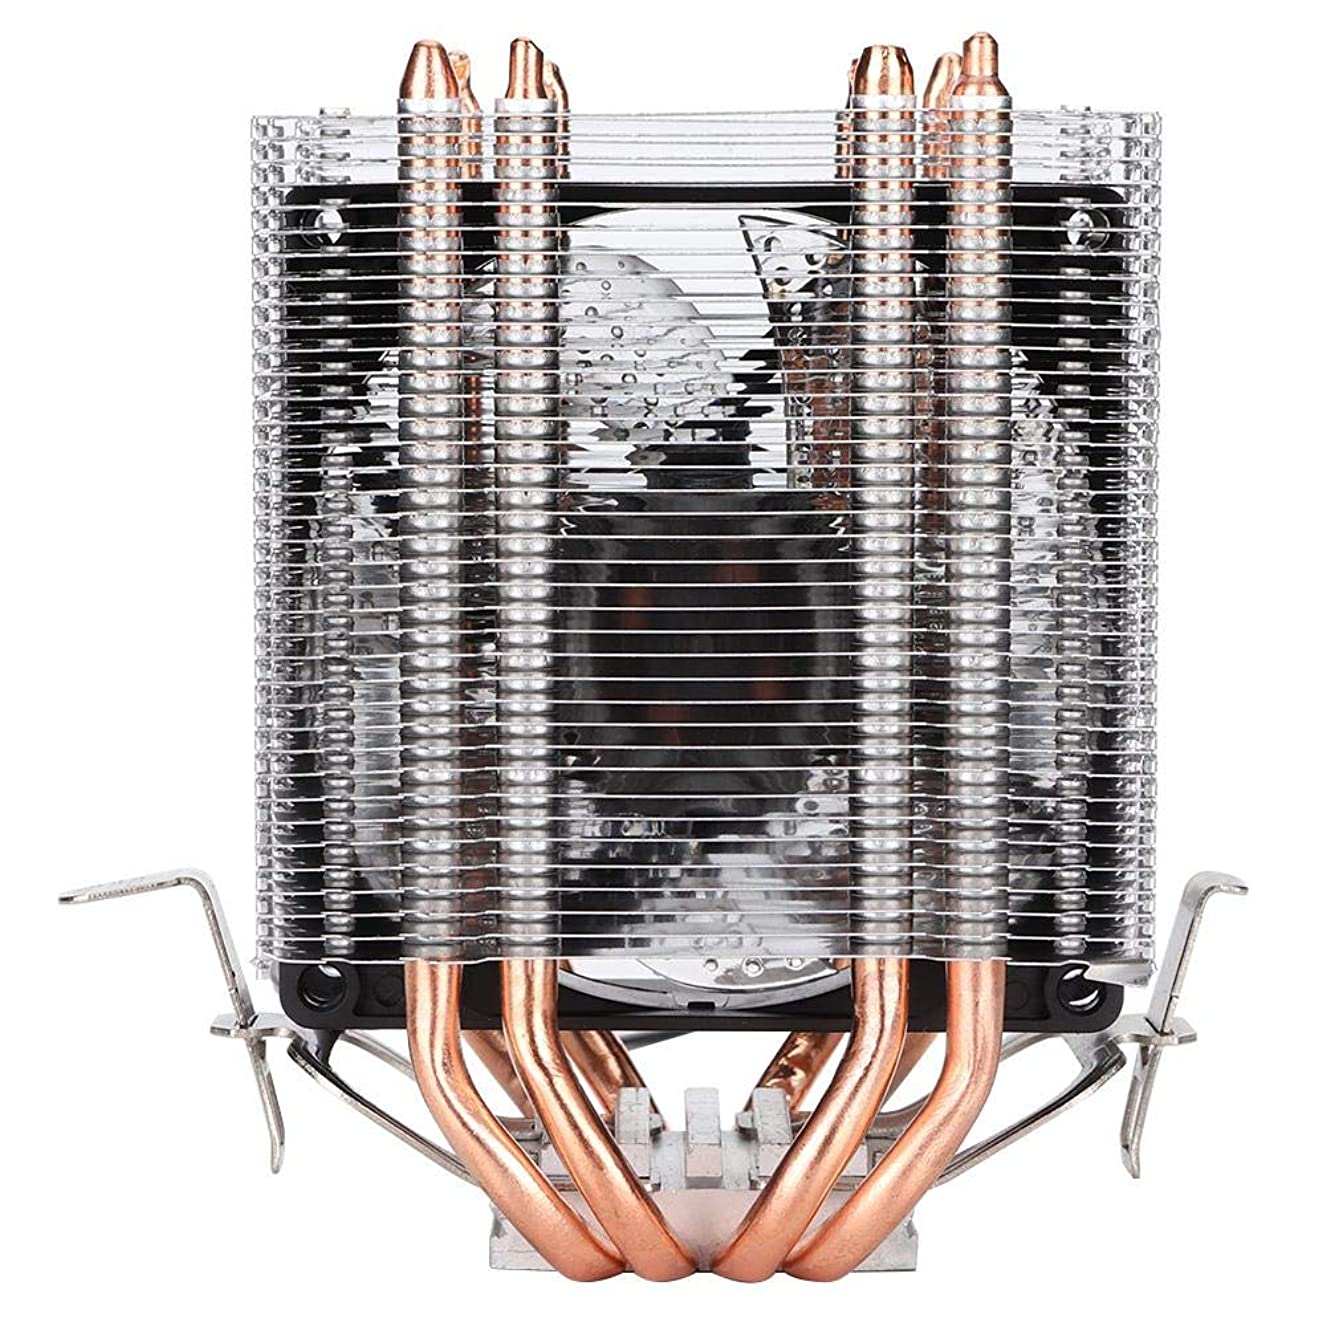 WISENOVO CPU Cooler Cold Storm T90 4 Heat Pipe Twin Tower Silent CPU Cooling Fan Streamer Blue Dual-Fan Radiator Heatsink 3-pin Hydraulic Bearing for Home Office Server(4P Temperature Control)